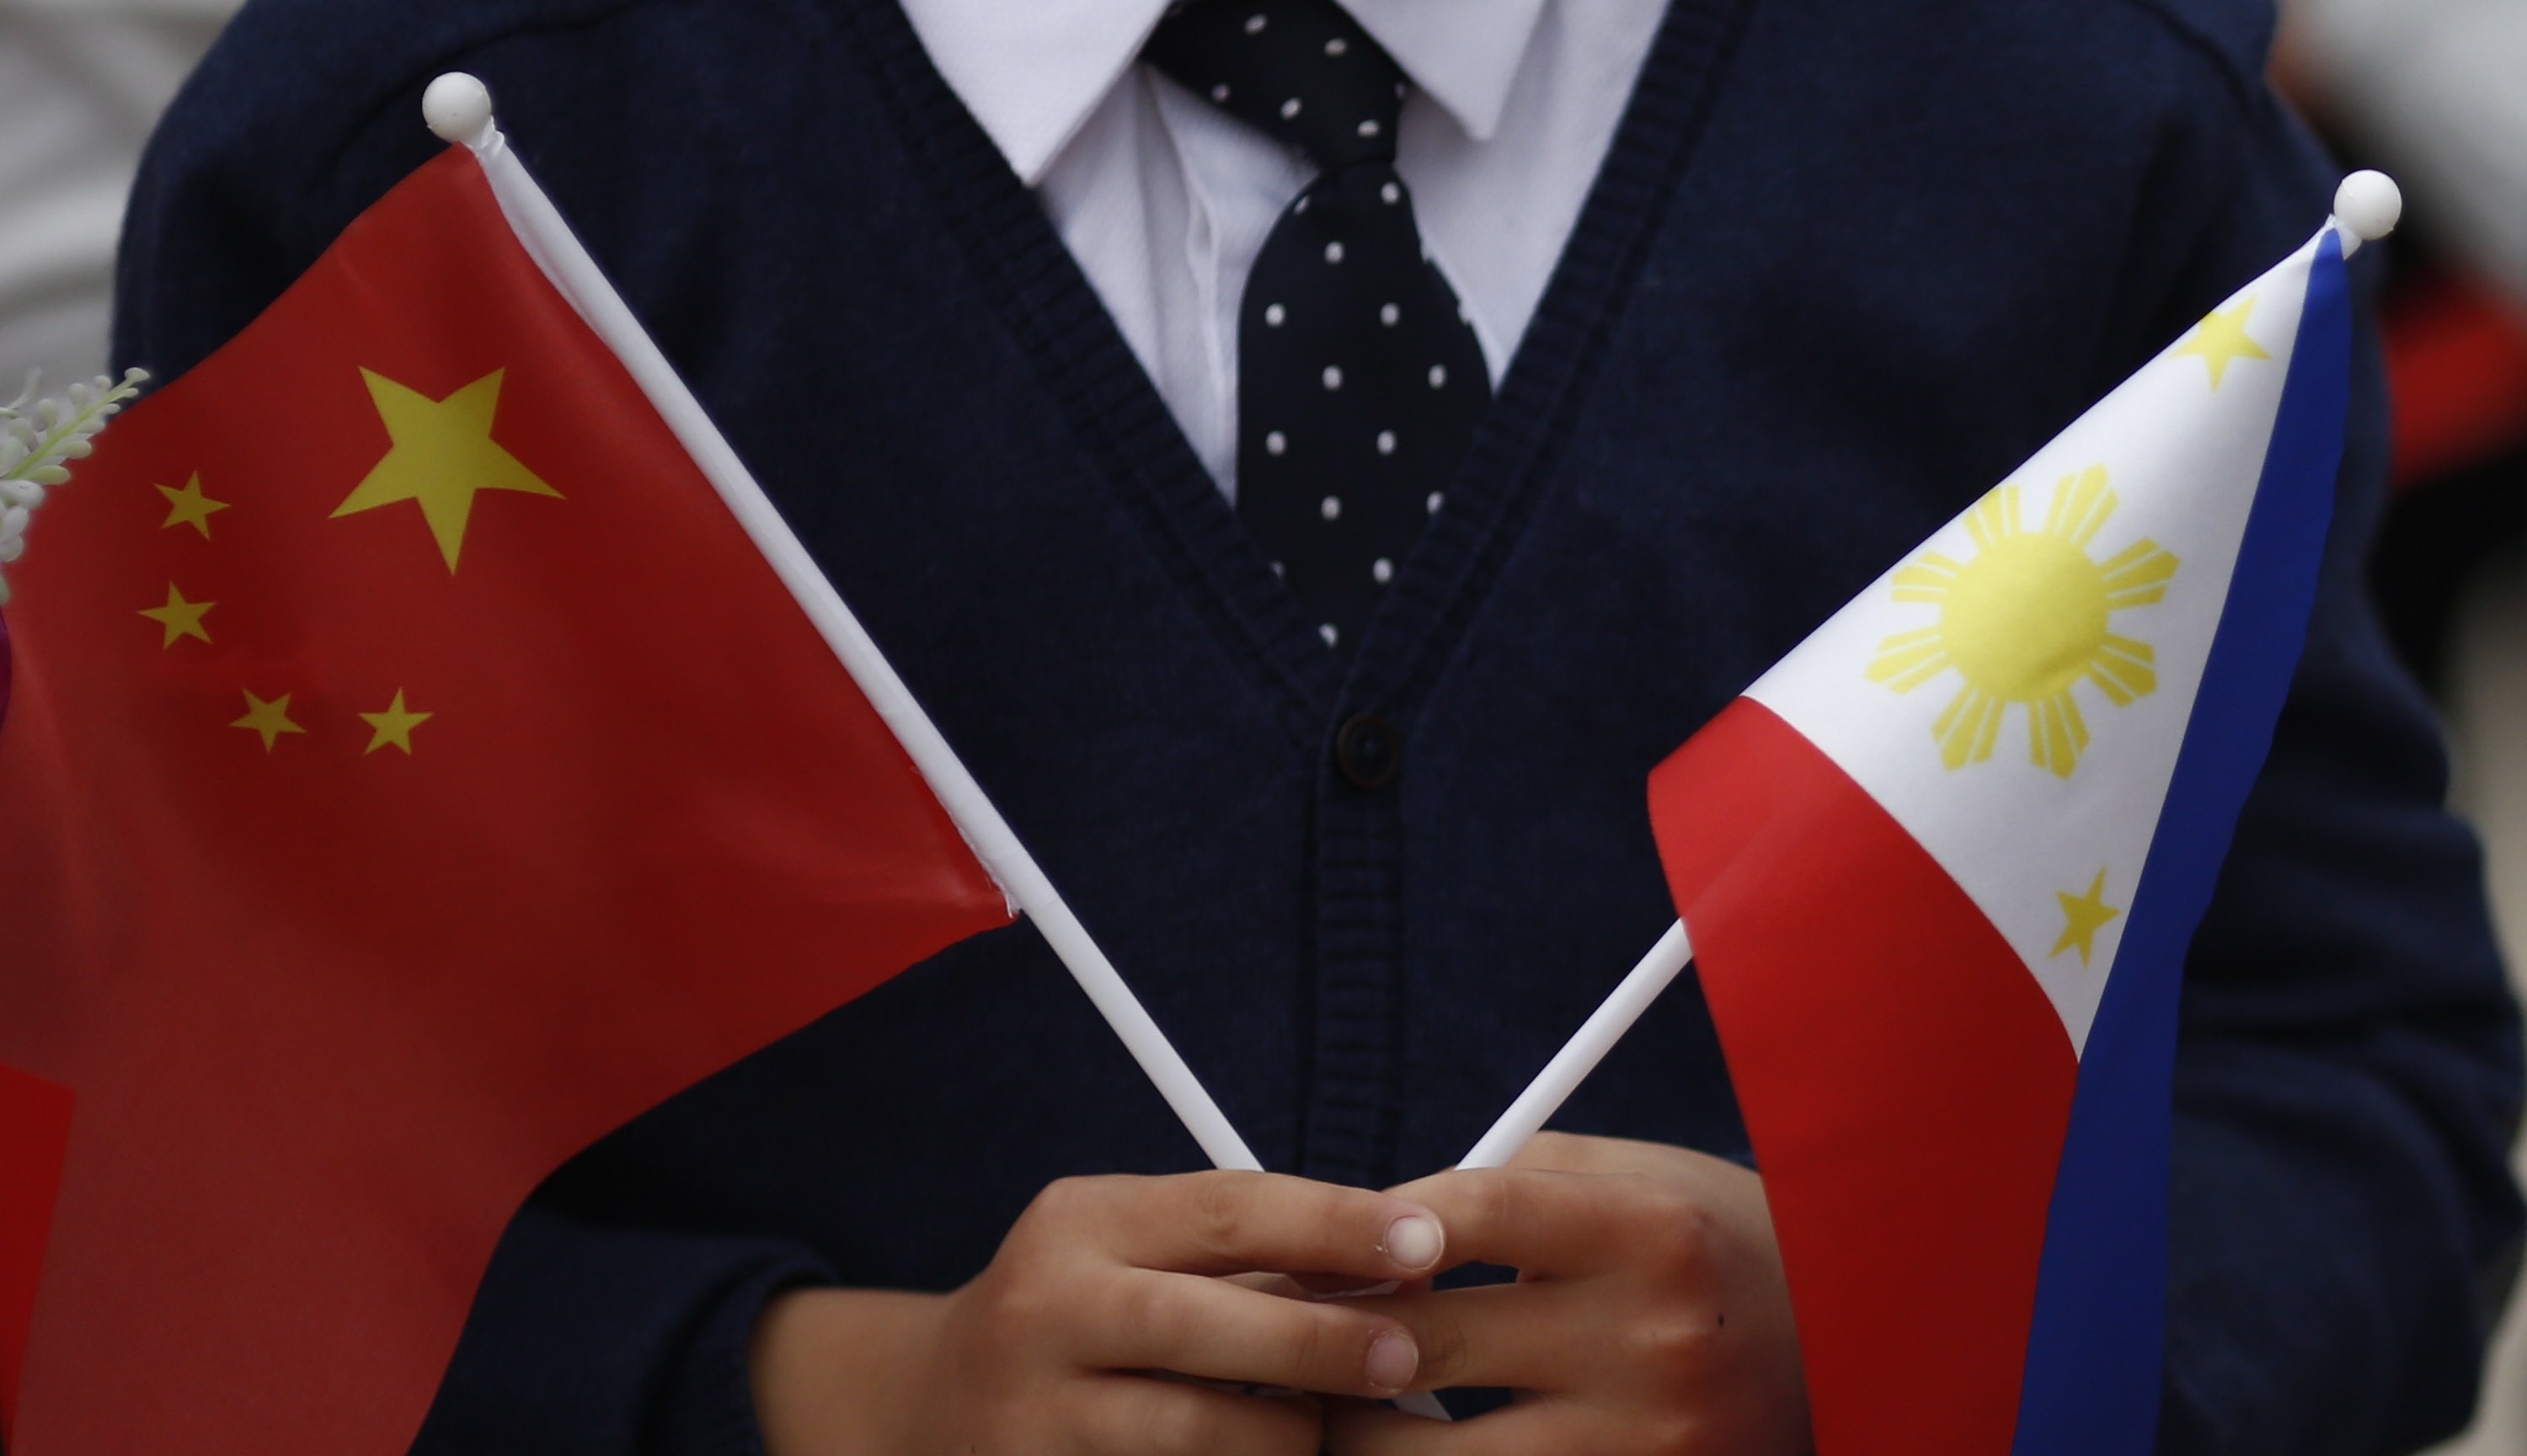 Children hold national flags during Philippine President Rodrigo Duterte's visit to Beijing in 2016 (Photo: Thomas Peter-Pool/Getty)